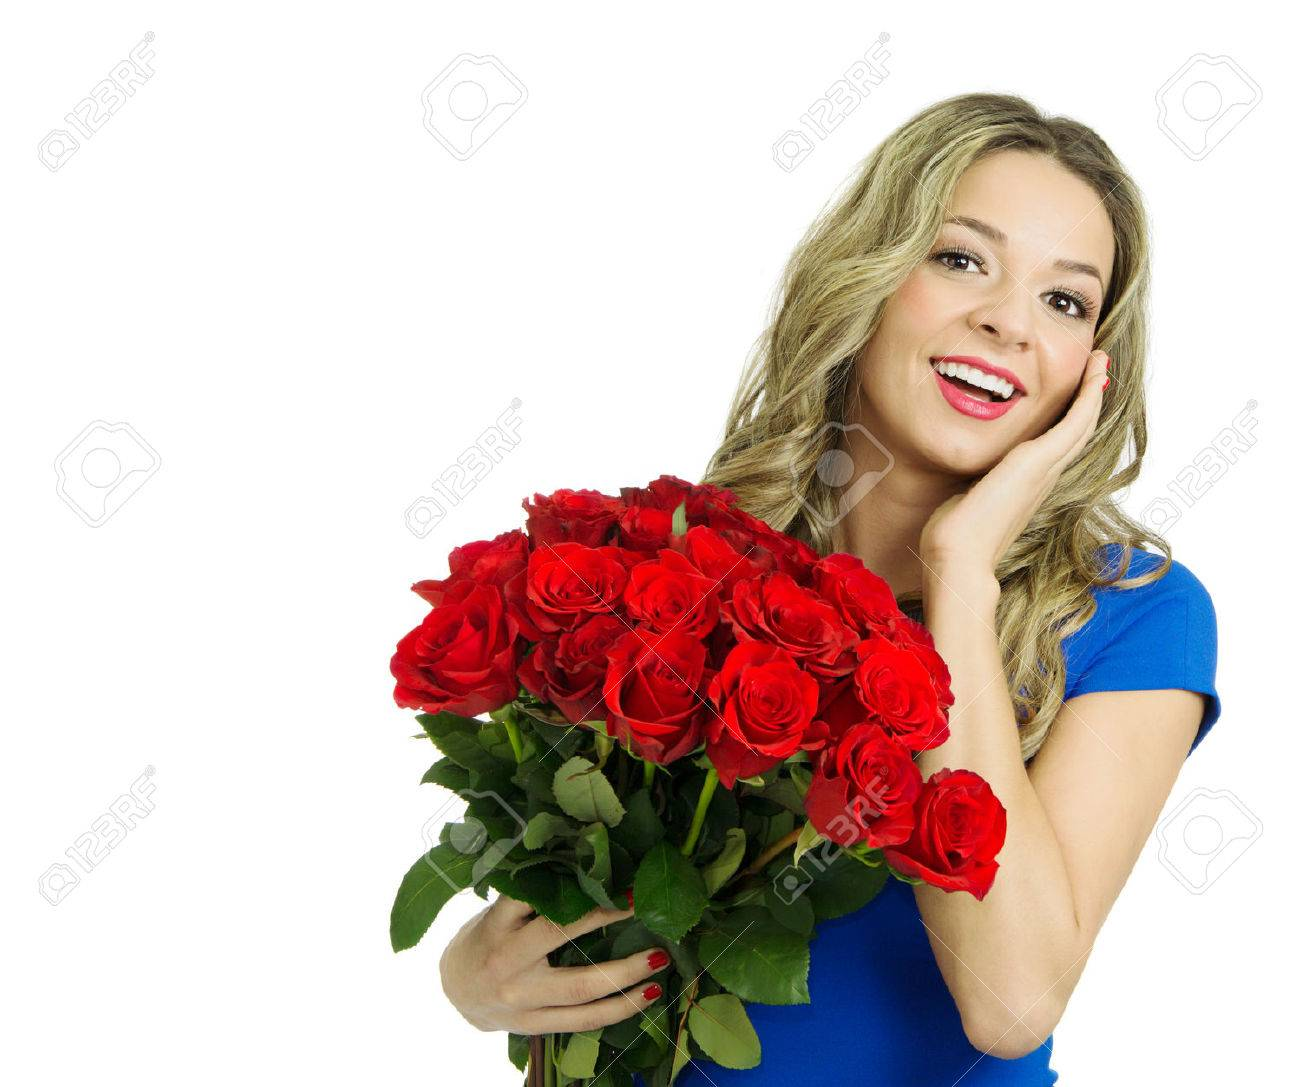 Beautiful blond with roses picture 625